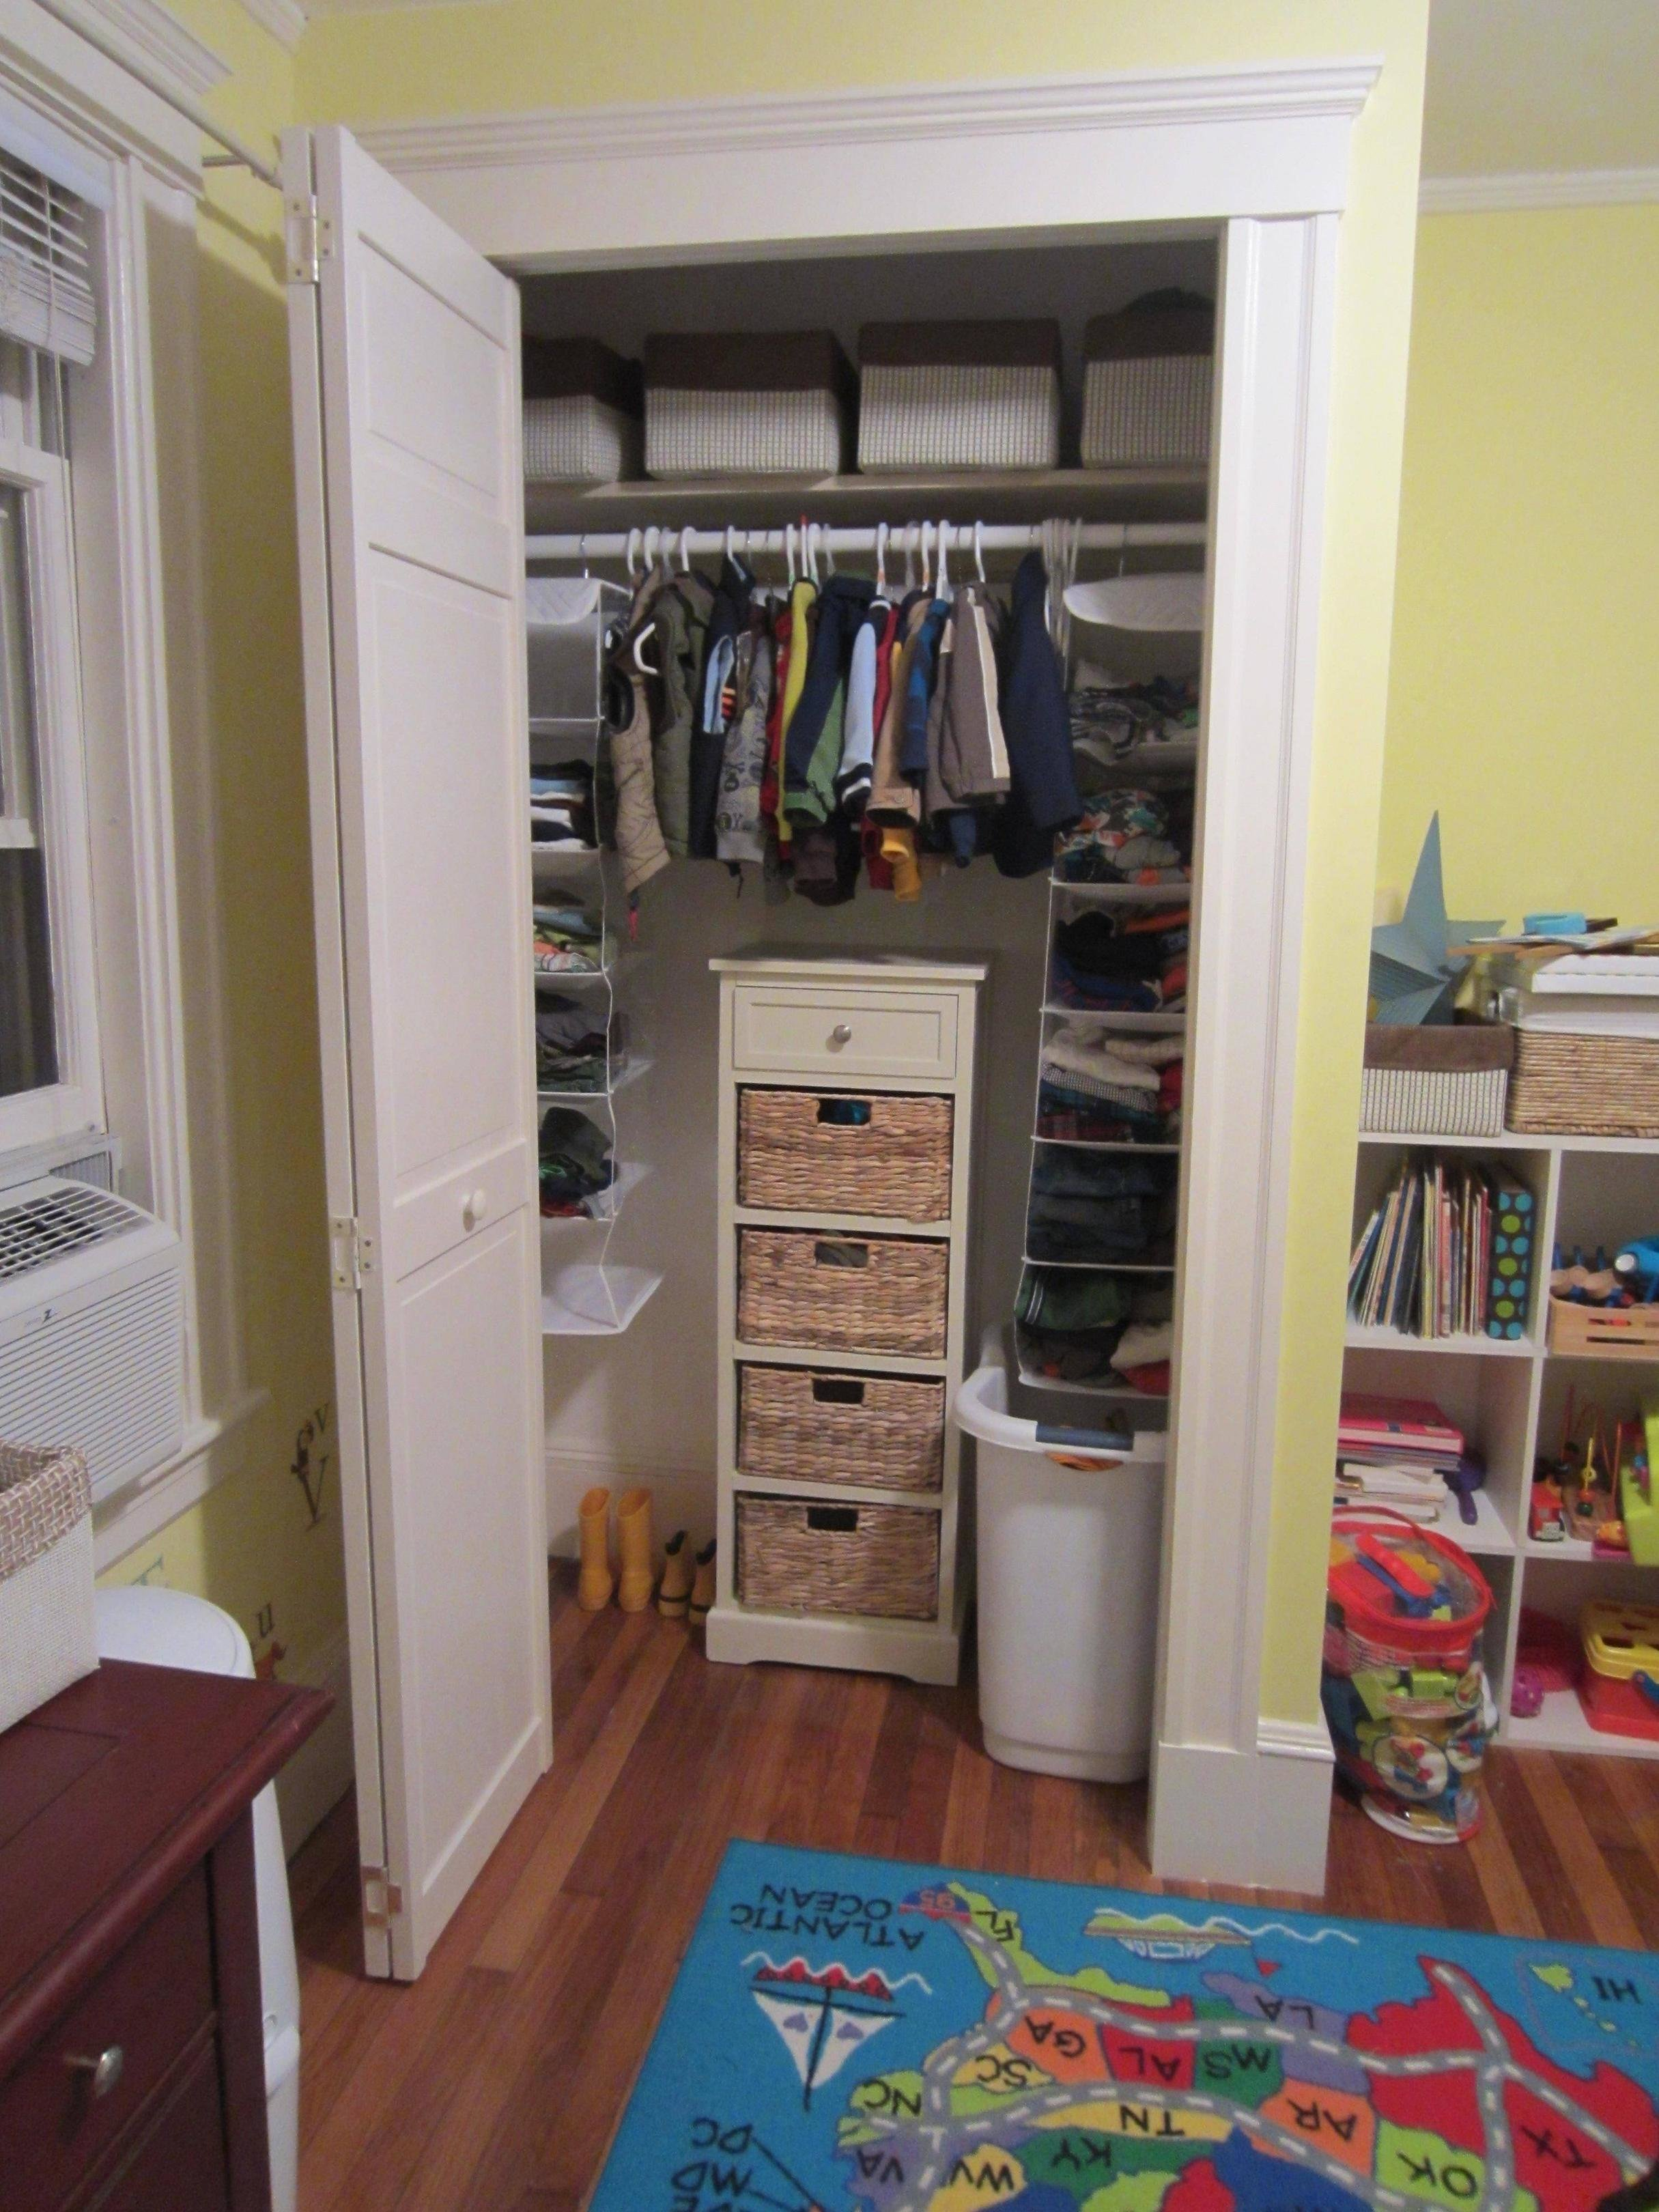 Best Design How Can I Add A Closet To An Existing Room Home Improvement Stack Exchange With Pictures